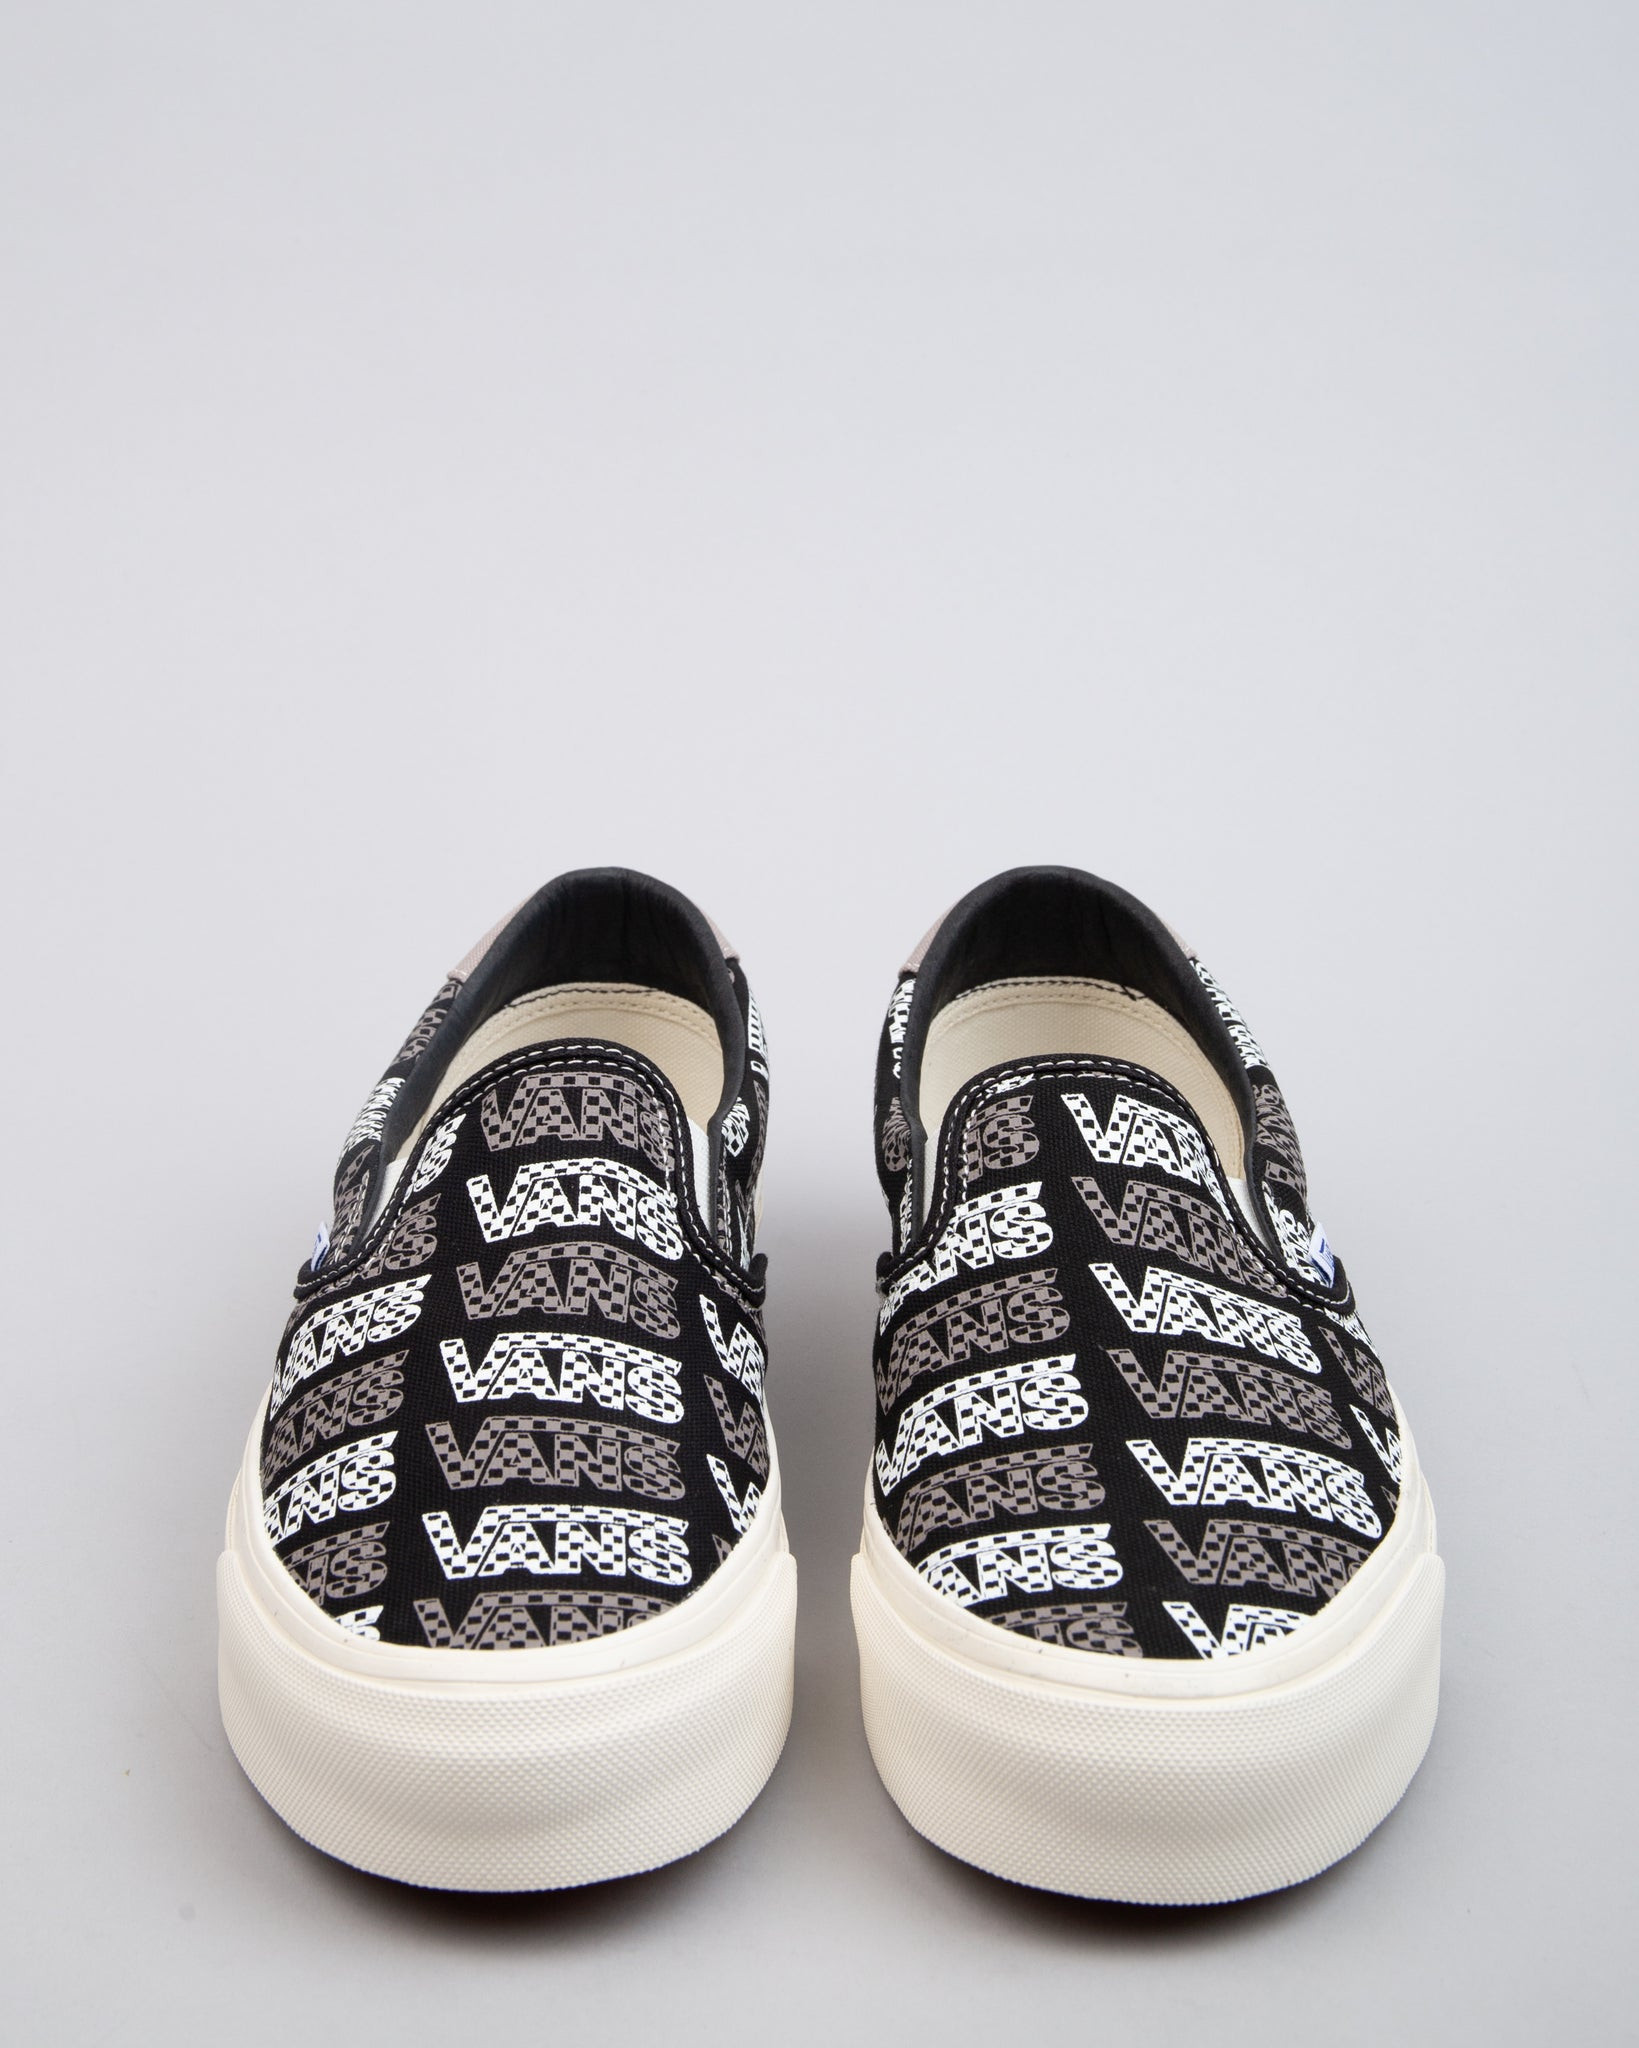 OG Slip-On 59 LX Black/Logo Checkerboard